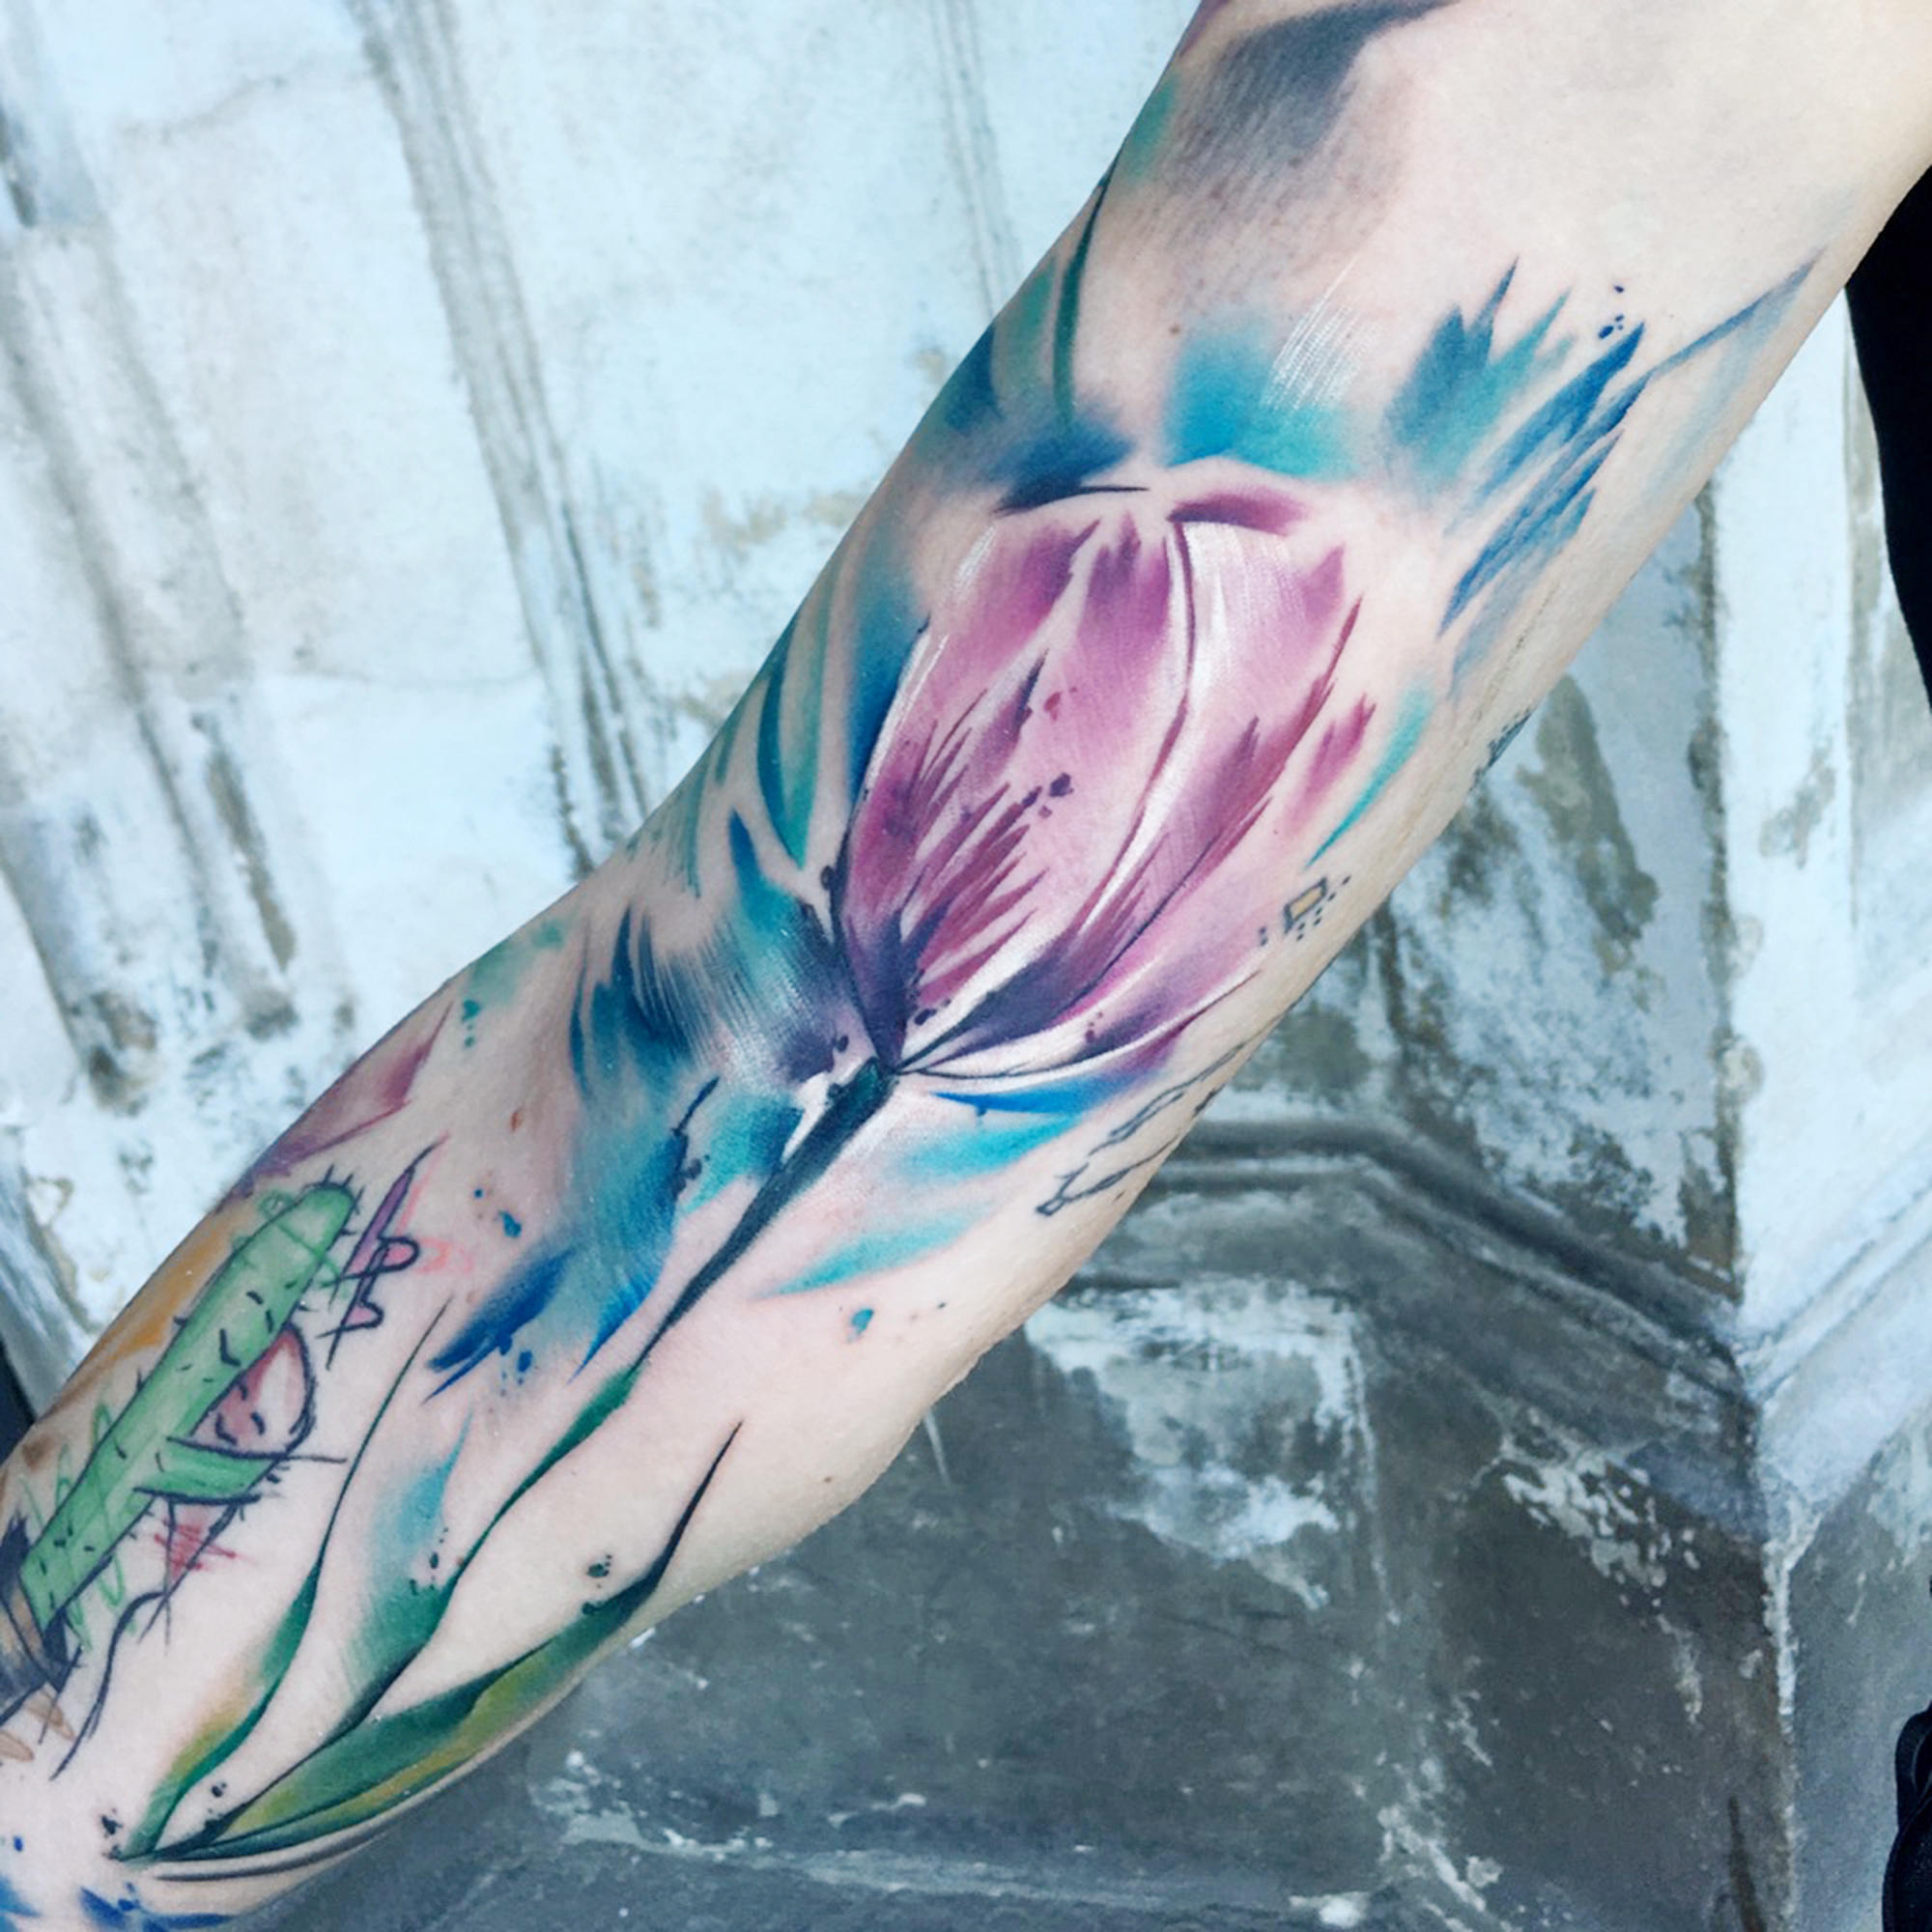 watercolor, painting style tulip by Filip Fabian, san francisco, blue and black studio